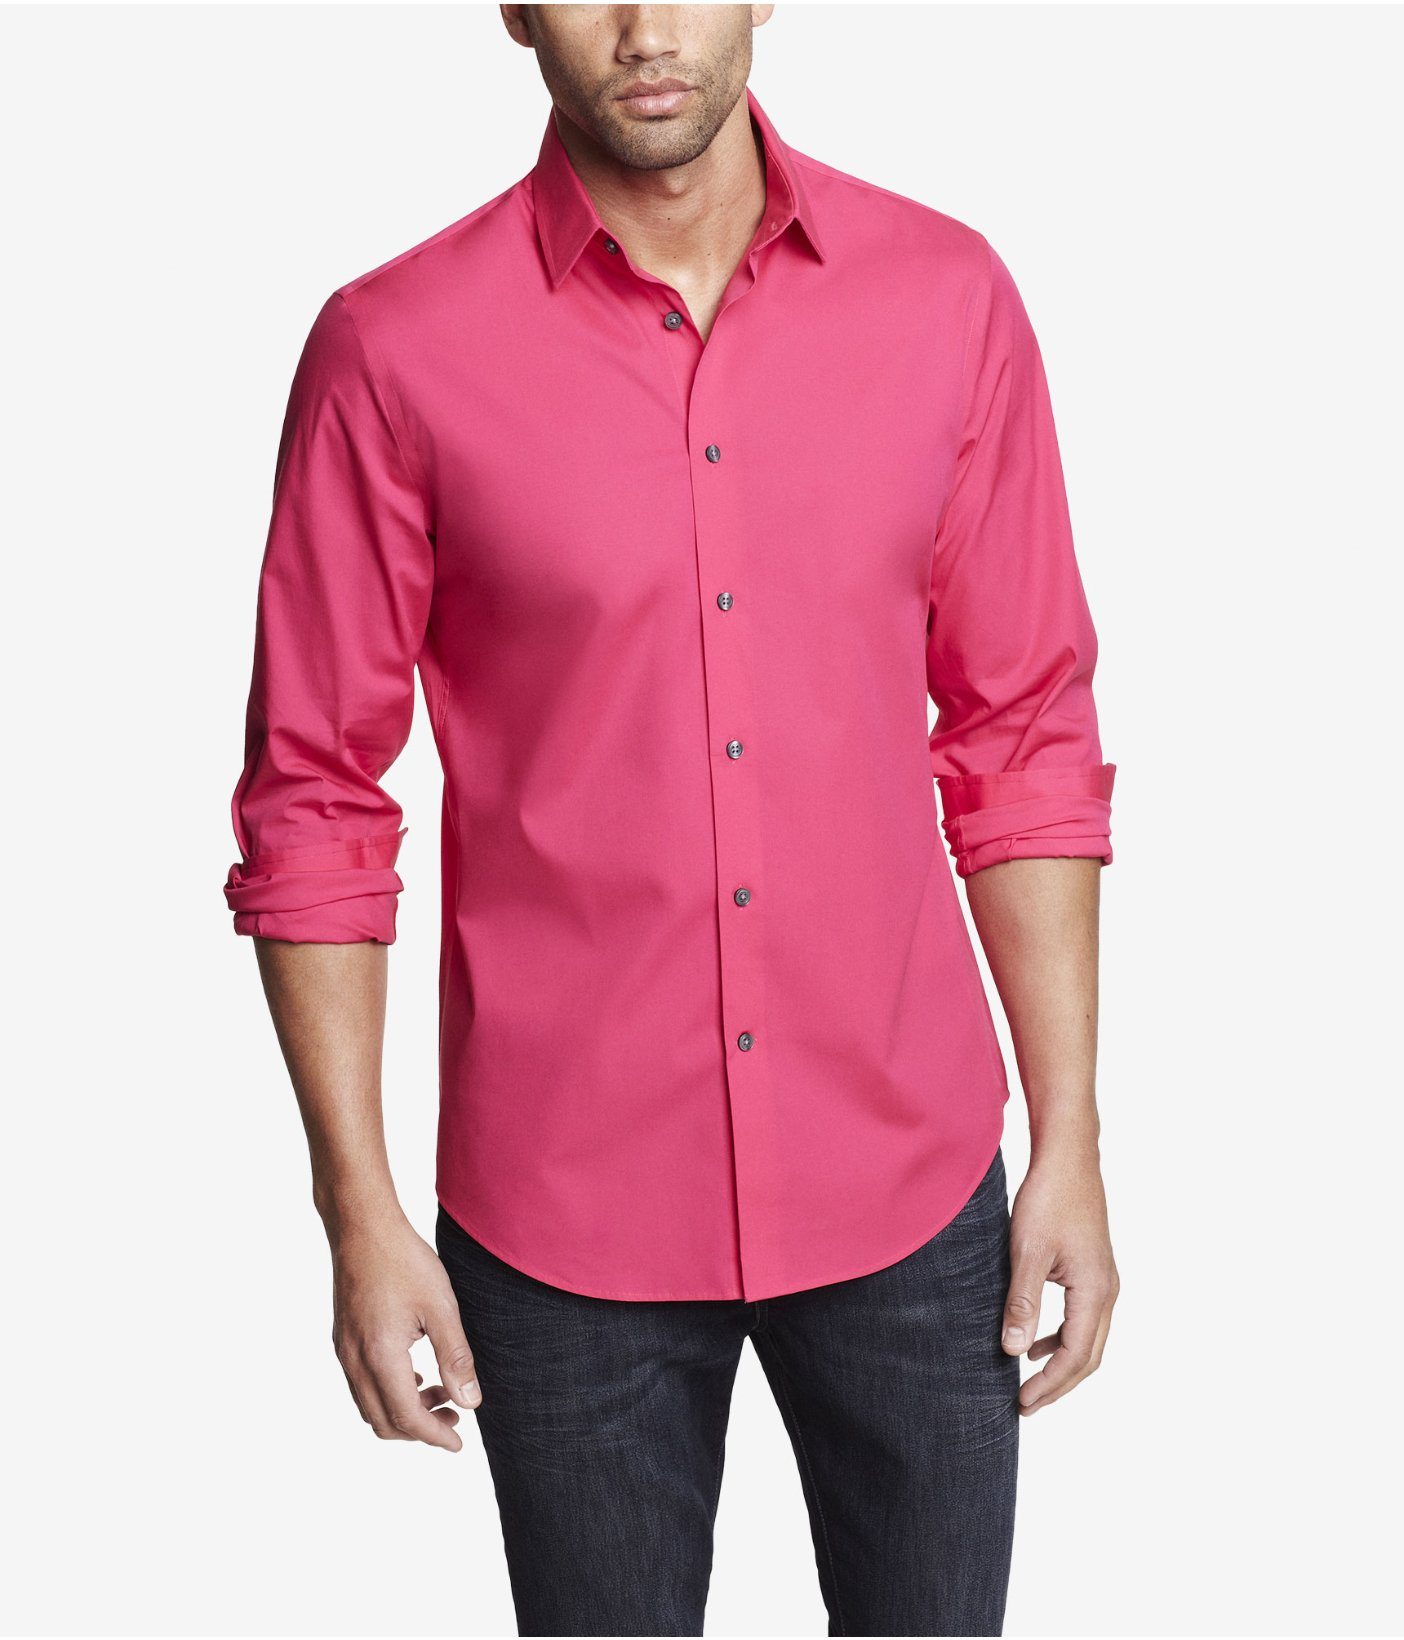 Pink shades to flatter all skin tones. Tyrwhitt shirts are cut from % cotton, available in three fits, and boast double-stitched buttons. Our formal styles are offered in french or button cuffs, too - but whatever your preference, remember a half-inch should show at the end of your jacket sleeve.